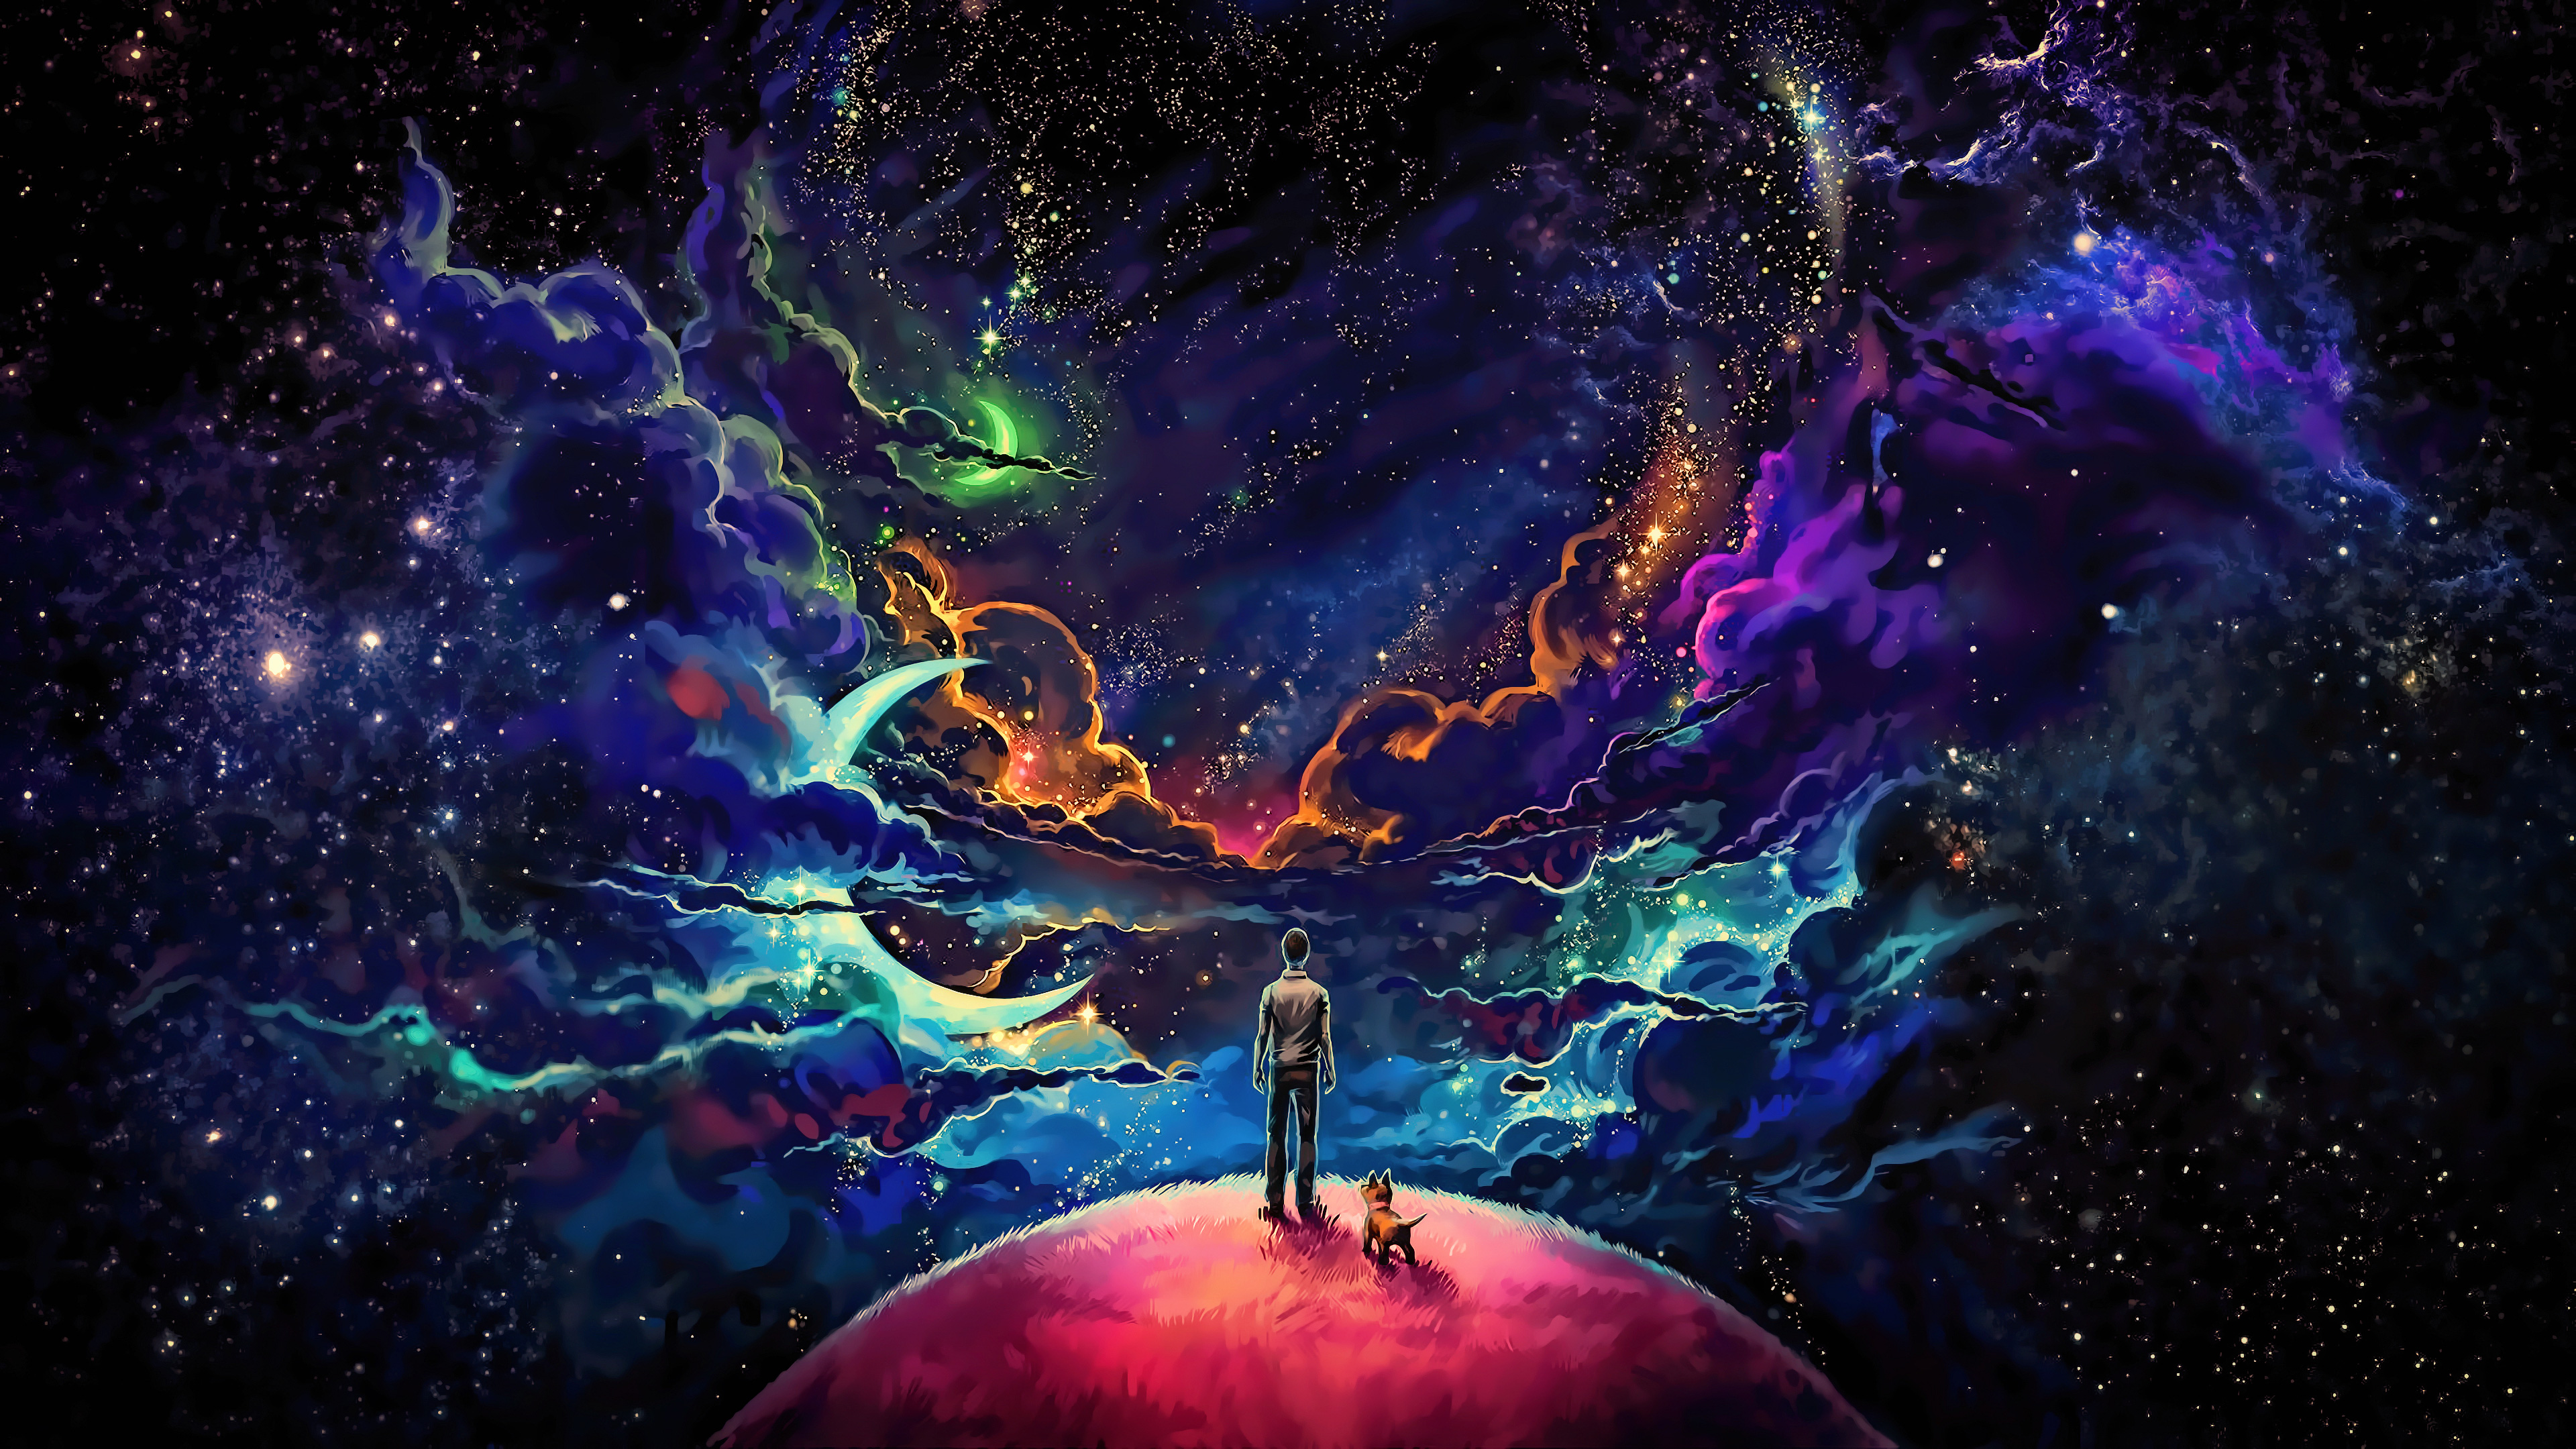 Little prince with dog colorful science fiction fantasy - Art wallpaper 2160x3840 ...